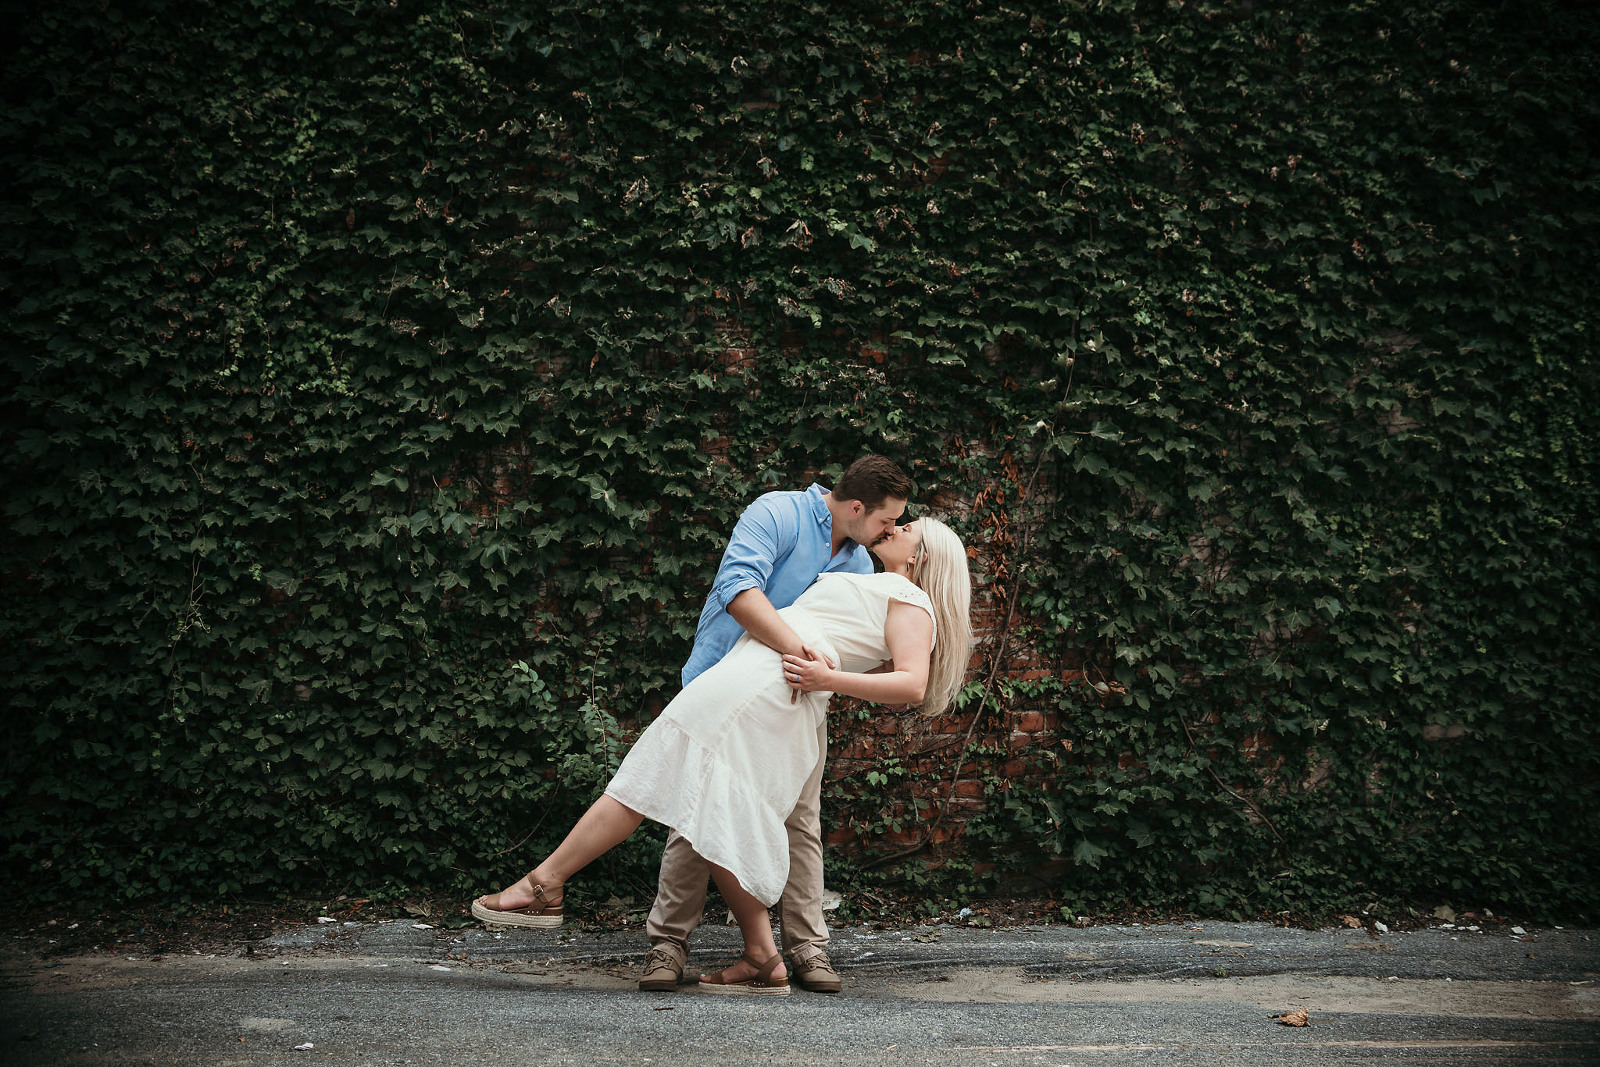 Engaged couple embracing in a dip kiss during an outdoor summer engagement session in downtown Fort Wayne by Kasey Wallace Photography